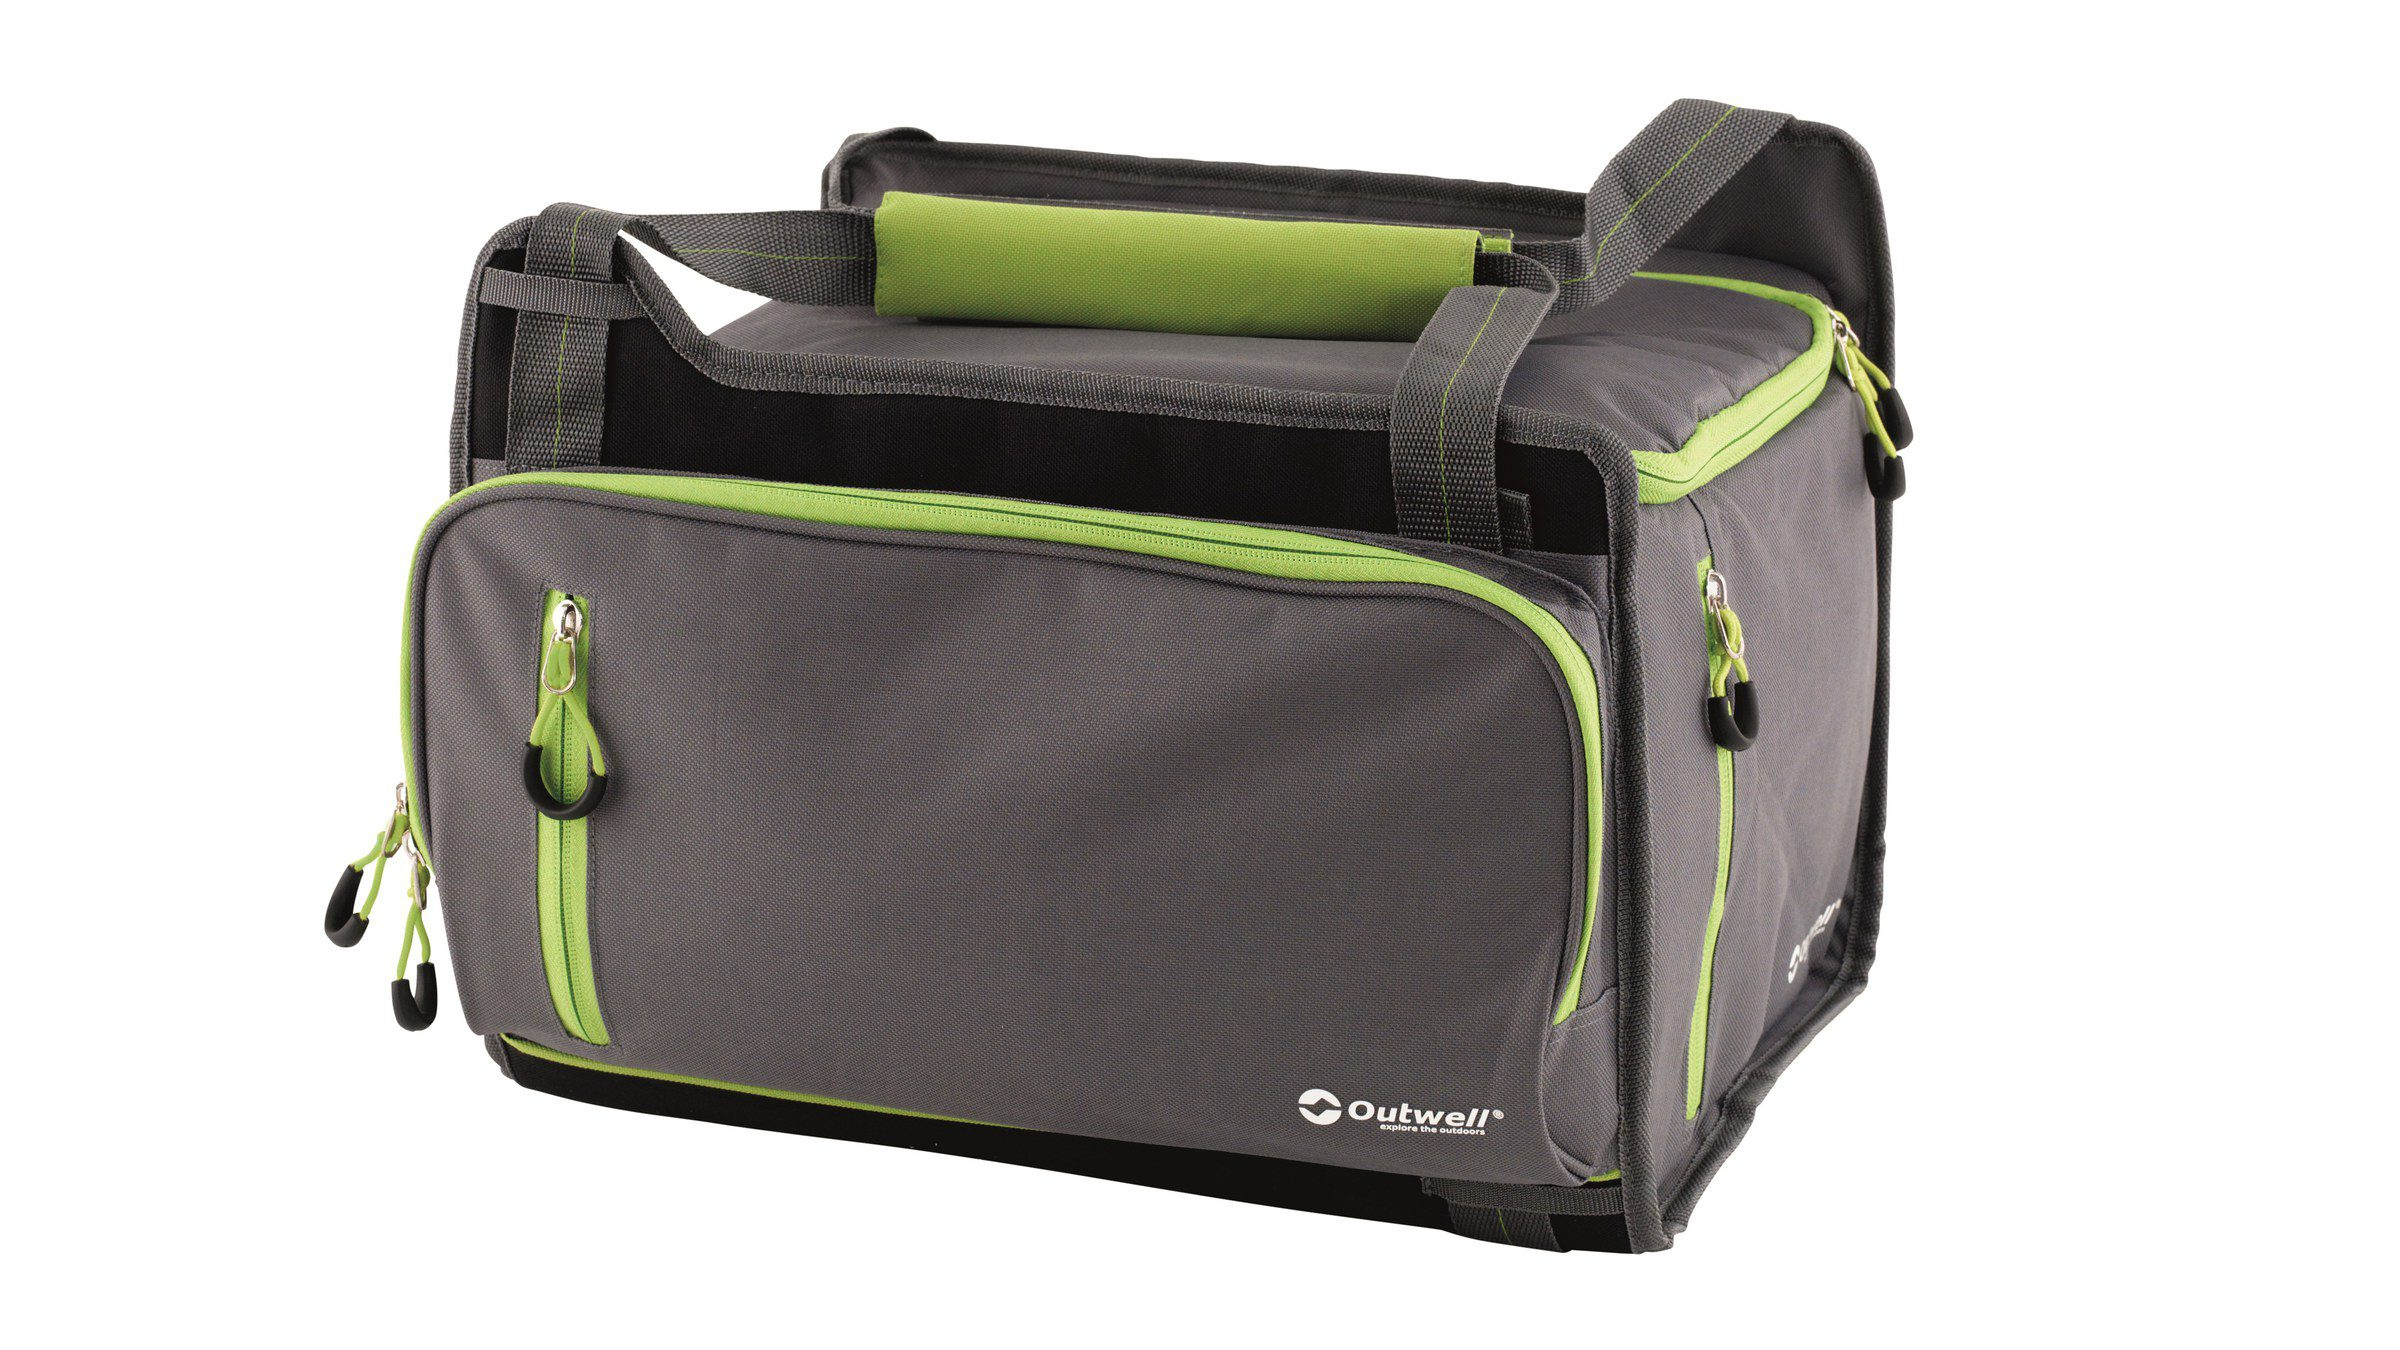 Outwell Cormorant M Cool bag